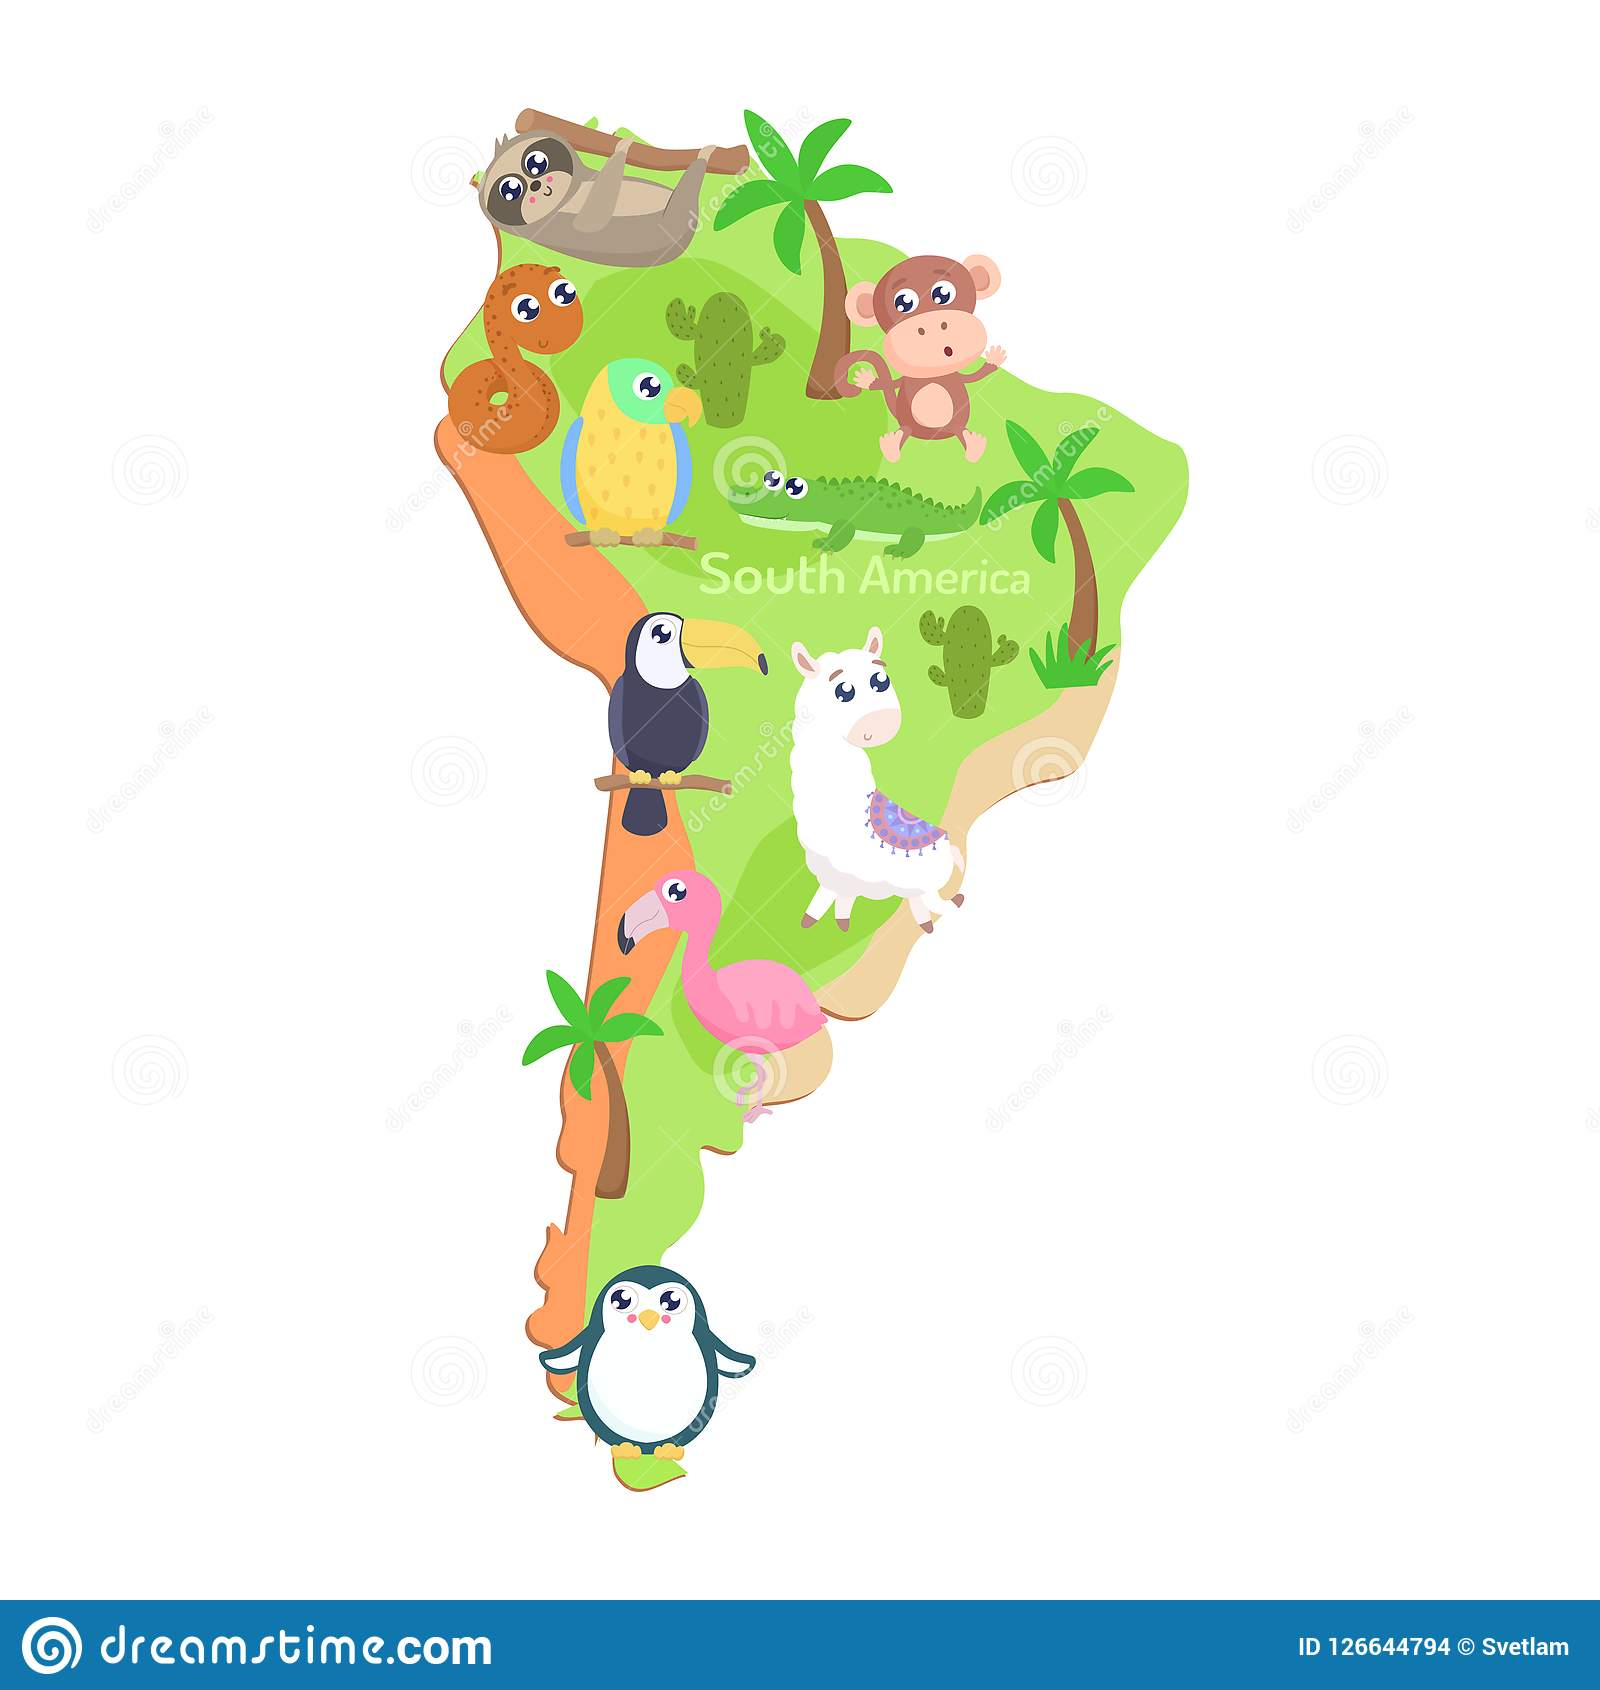 map of argentina, map of nicaragua, map of aruba, map of belize, map of united states, map of paraguay, map of middle east, map of costa rica, map of guatemala, map of western hemisphere, map of the americas, map of dominican republic, map of bahamas, map of ecuador, map of caribbean, map of venezuela, map of honduras, map of guyana, map of bolivia, map of antarctica, on kids map of south america